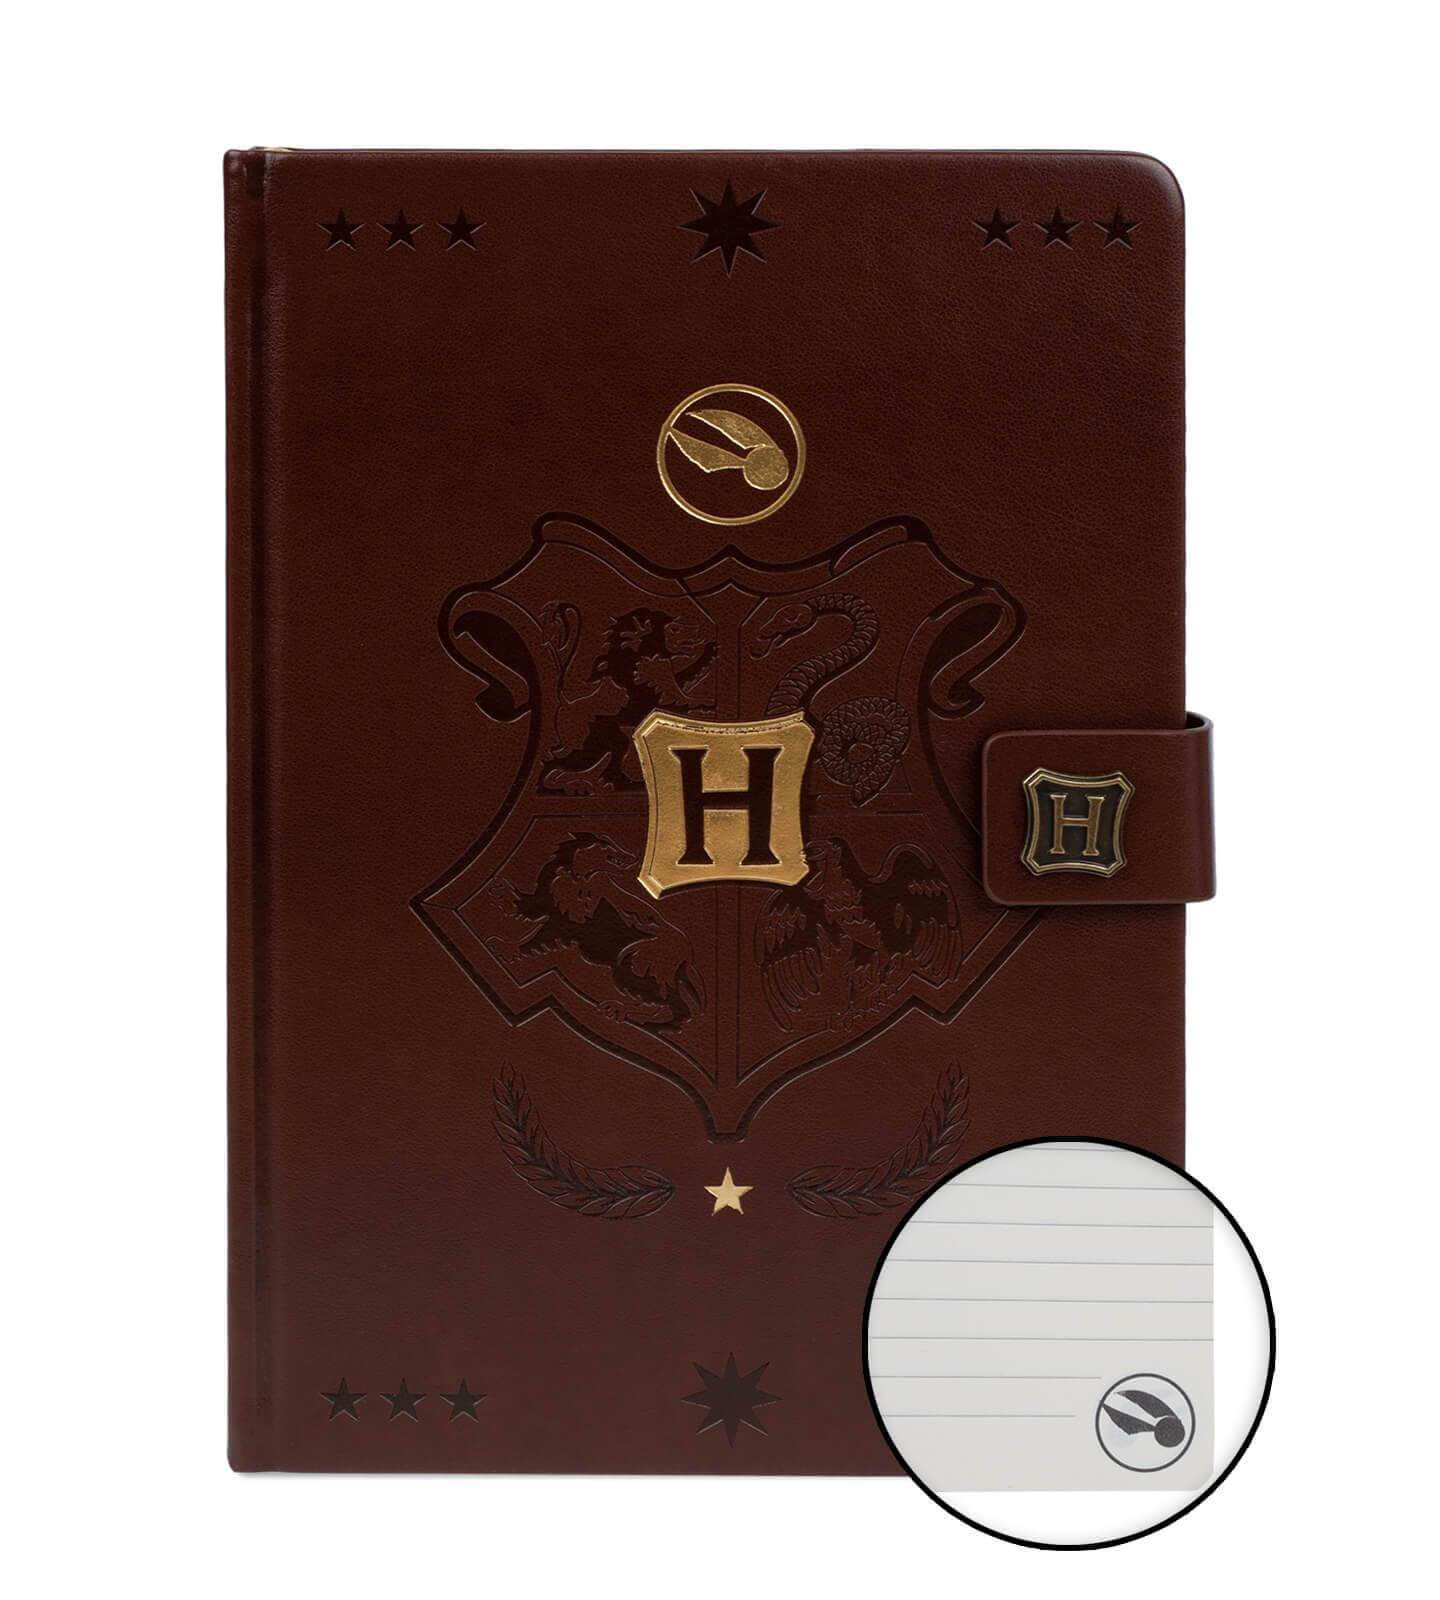 CARNET A5 PREMIUM QUIDDITCH - HARRY POTTER